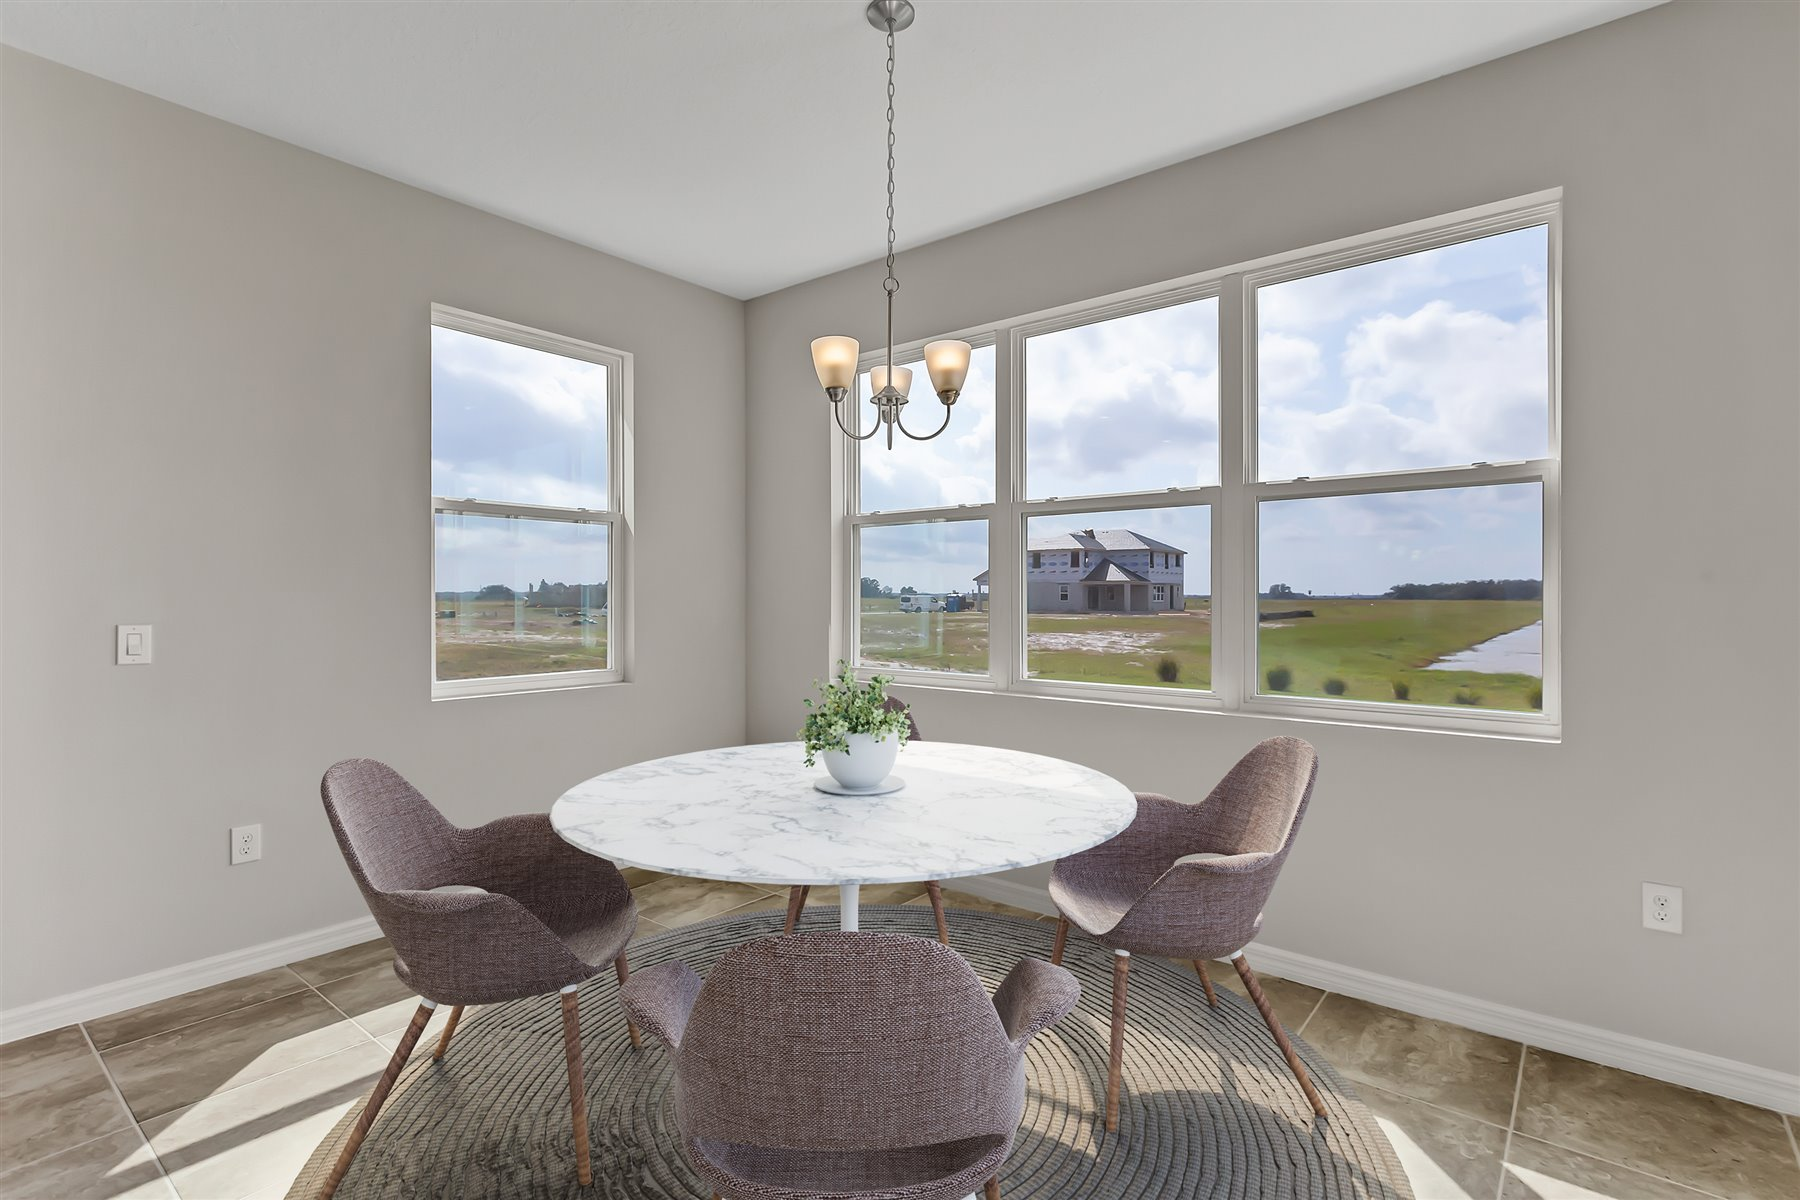 Graham Plan Breakfast at Tohoqua in Kissimmee Florida by Mattamy Homes